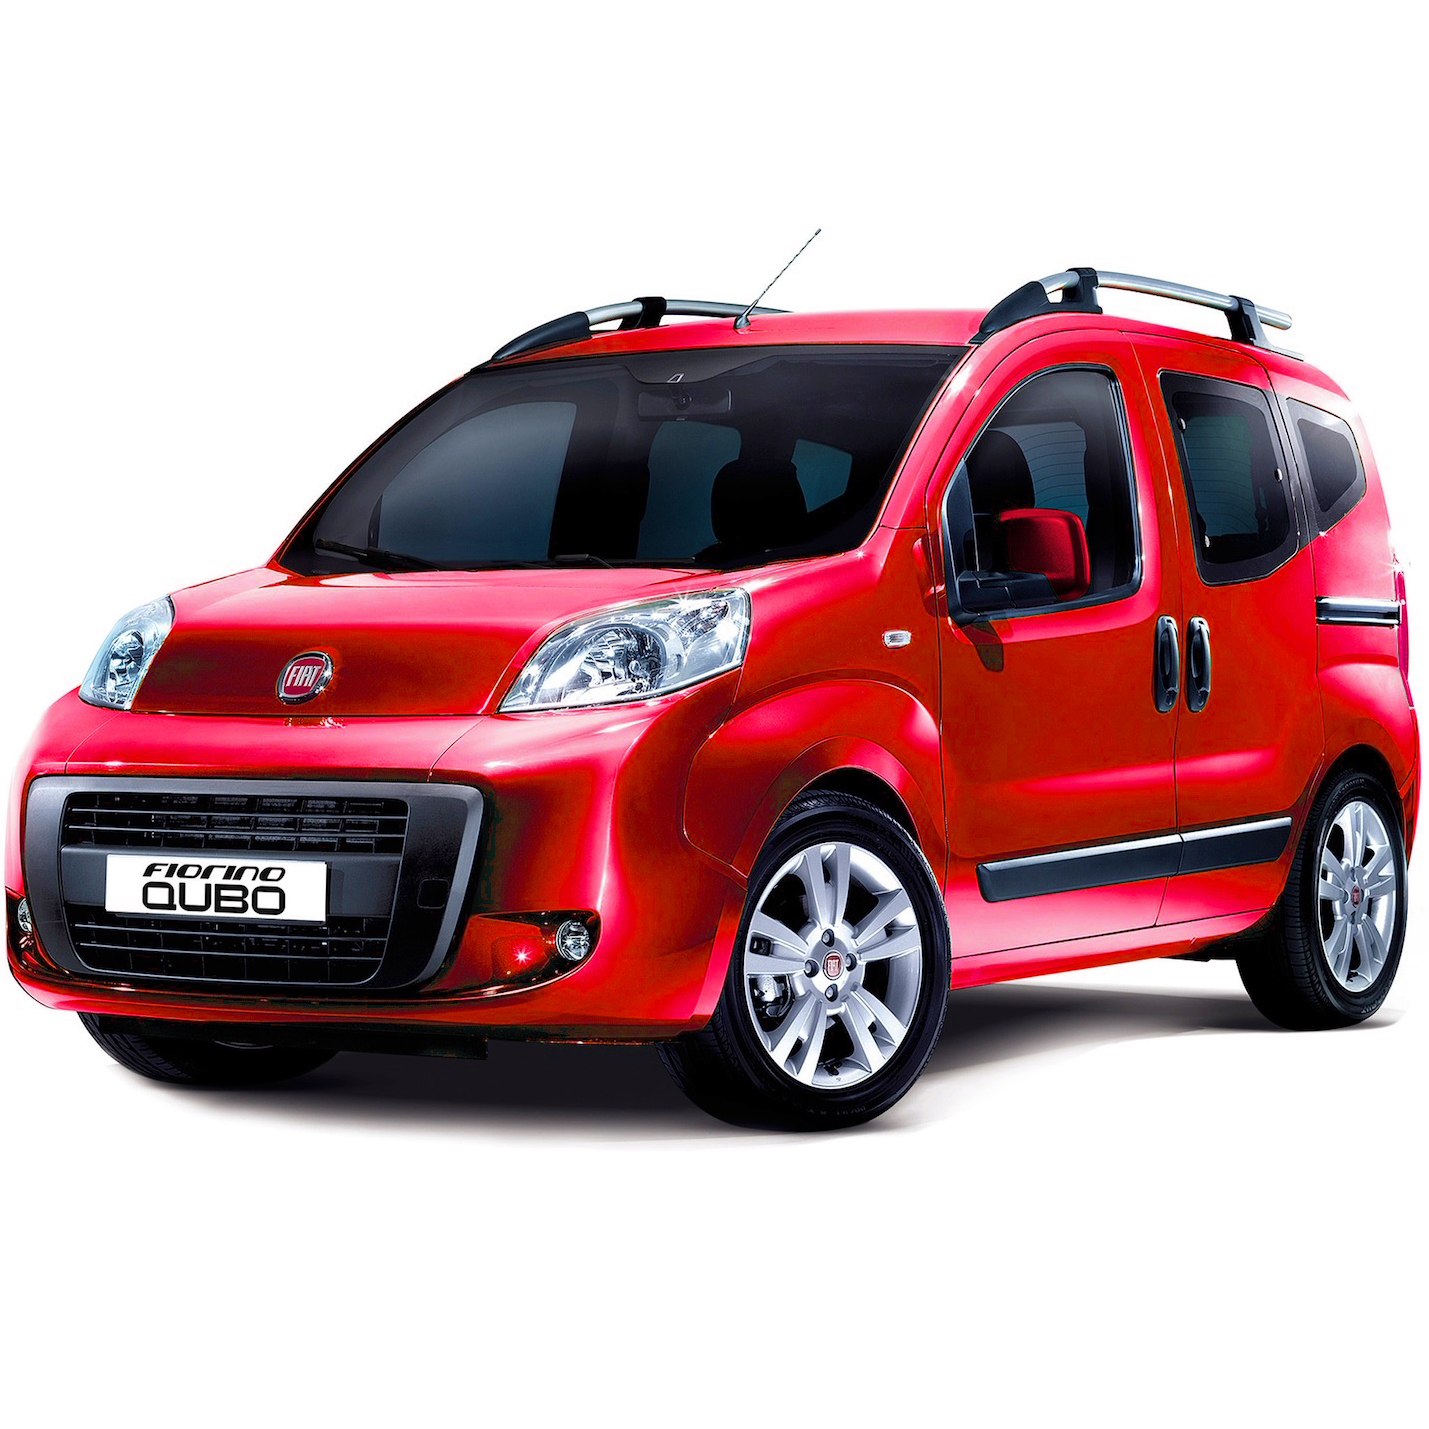 Fiat Qubo 2008 Onwards